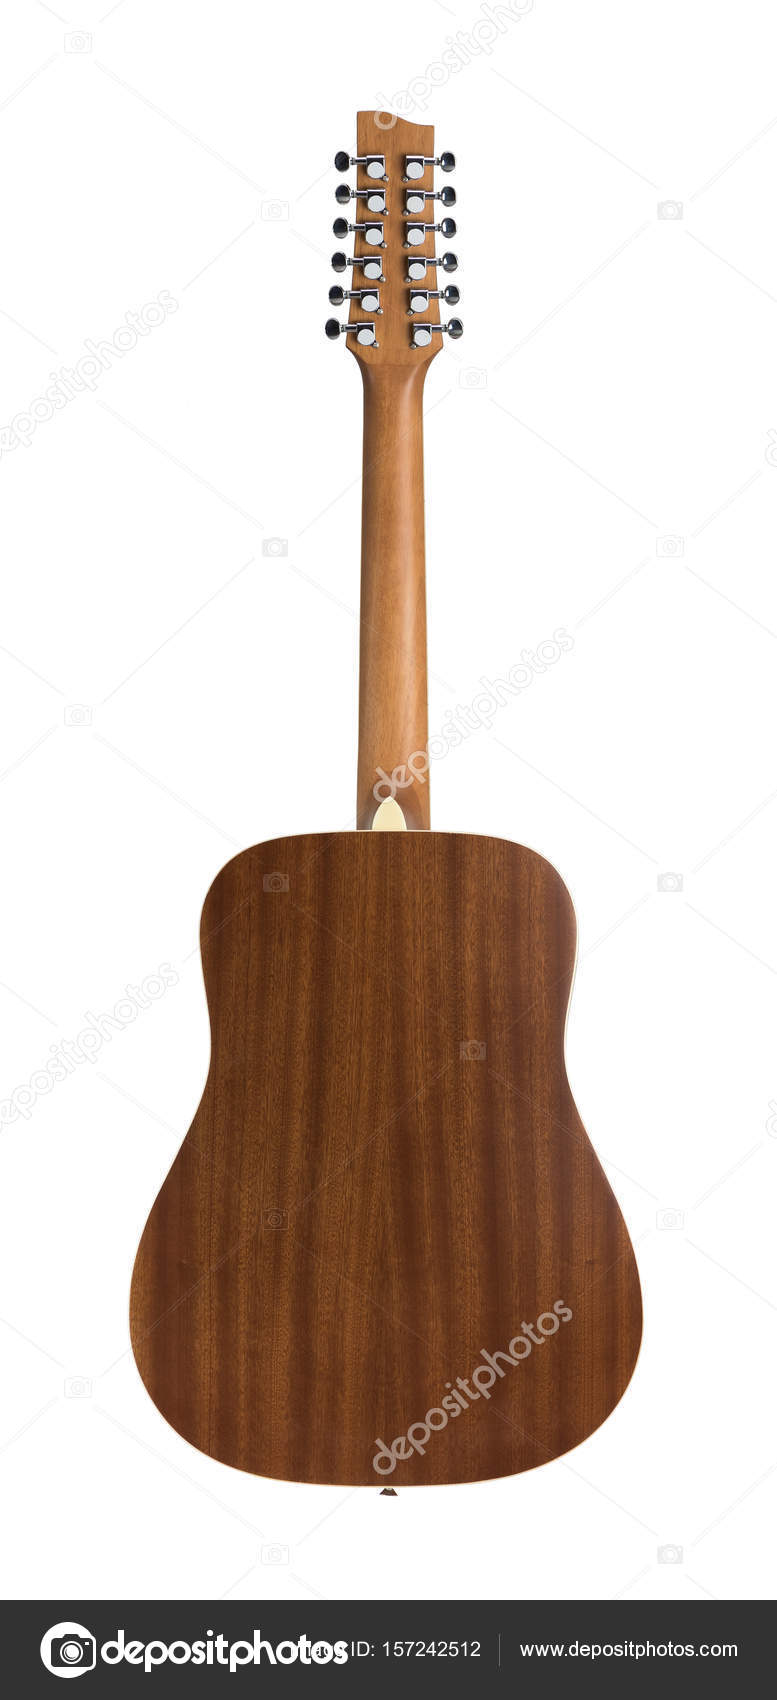 Back side of 12 string acoustic guitar stock photo kayco 157242512 back side of 12 string acoustic guitar isolated on a white background photo by kayco sciox Gallery